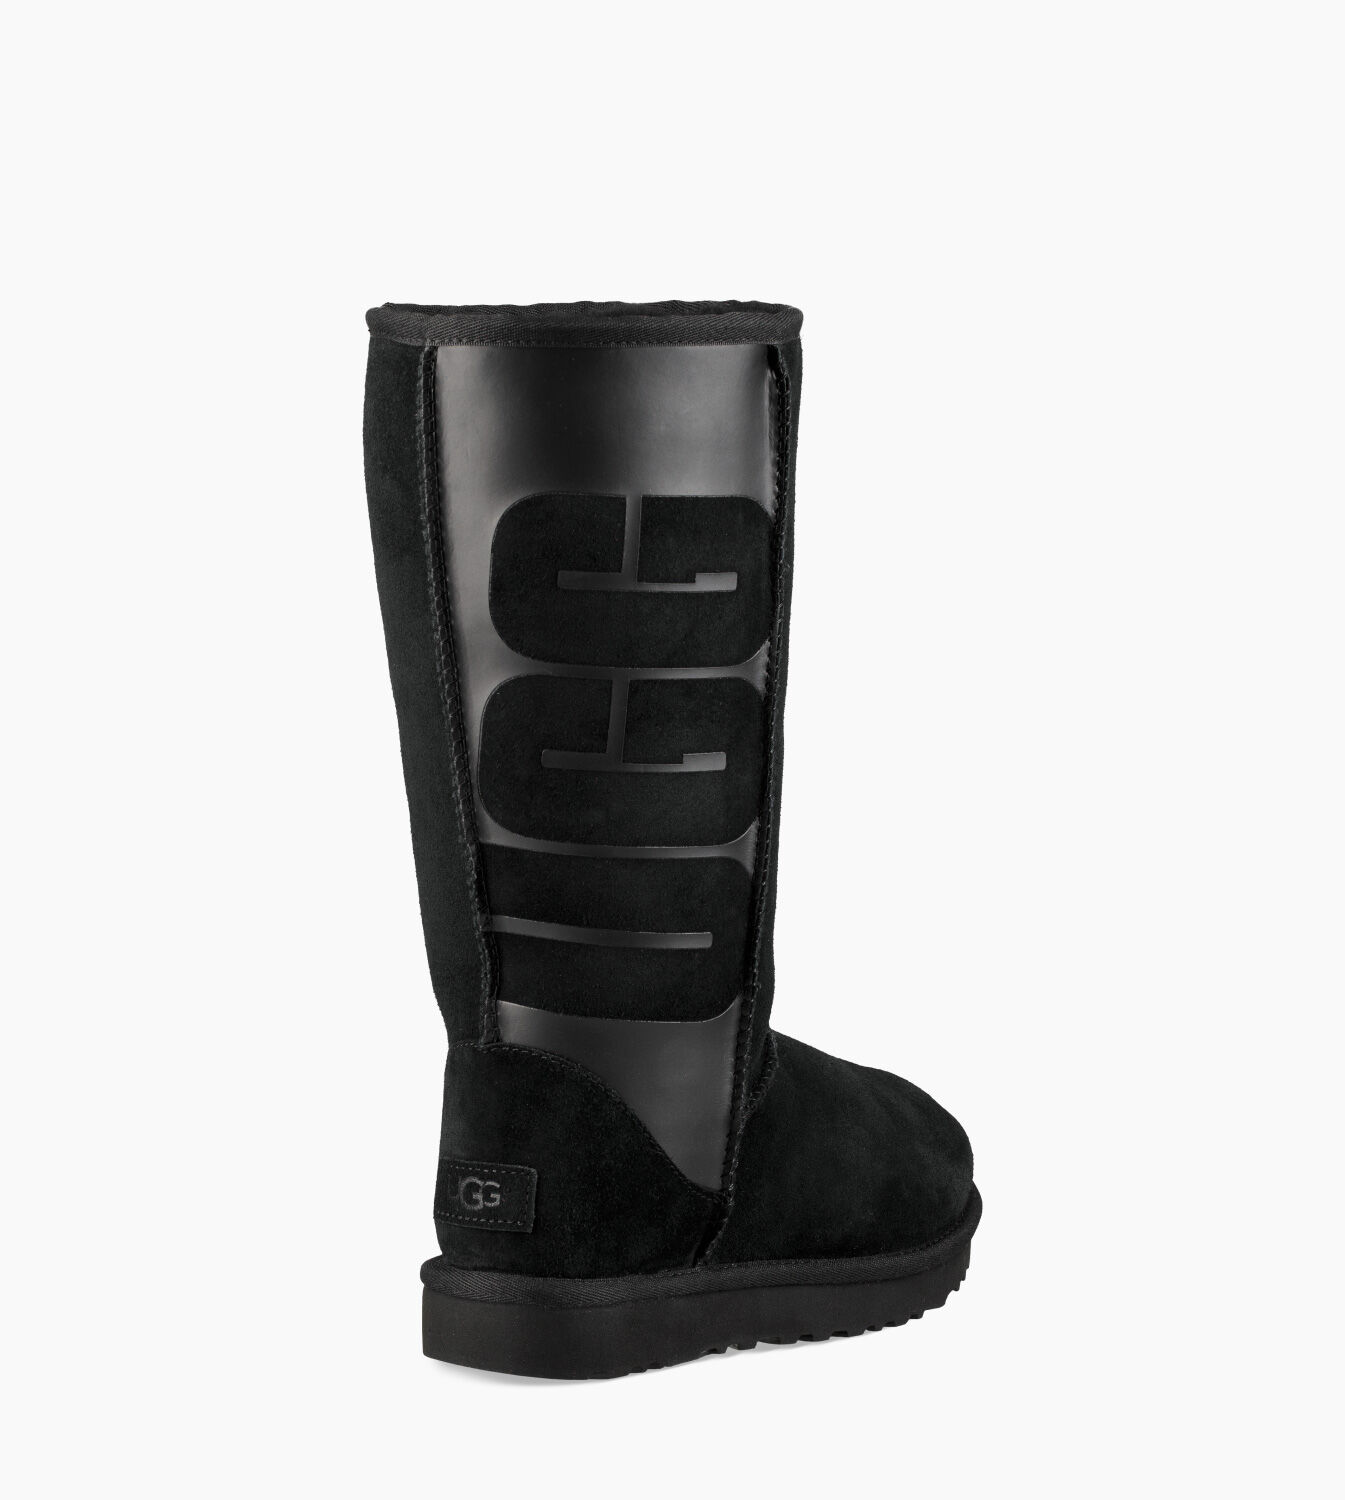 Zoom Classic Tall UGG Rubber Boot - Image 4 of 6